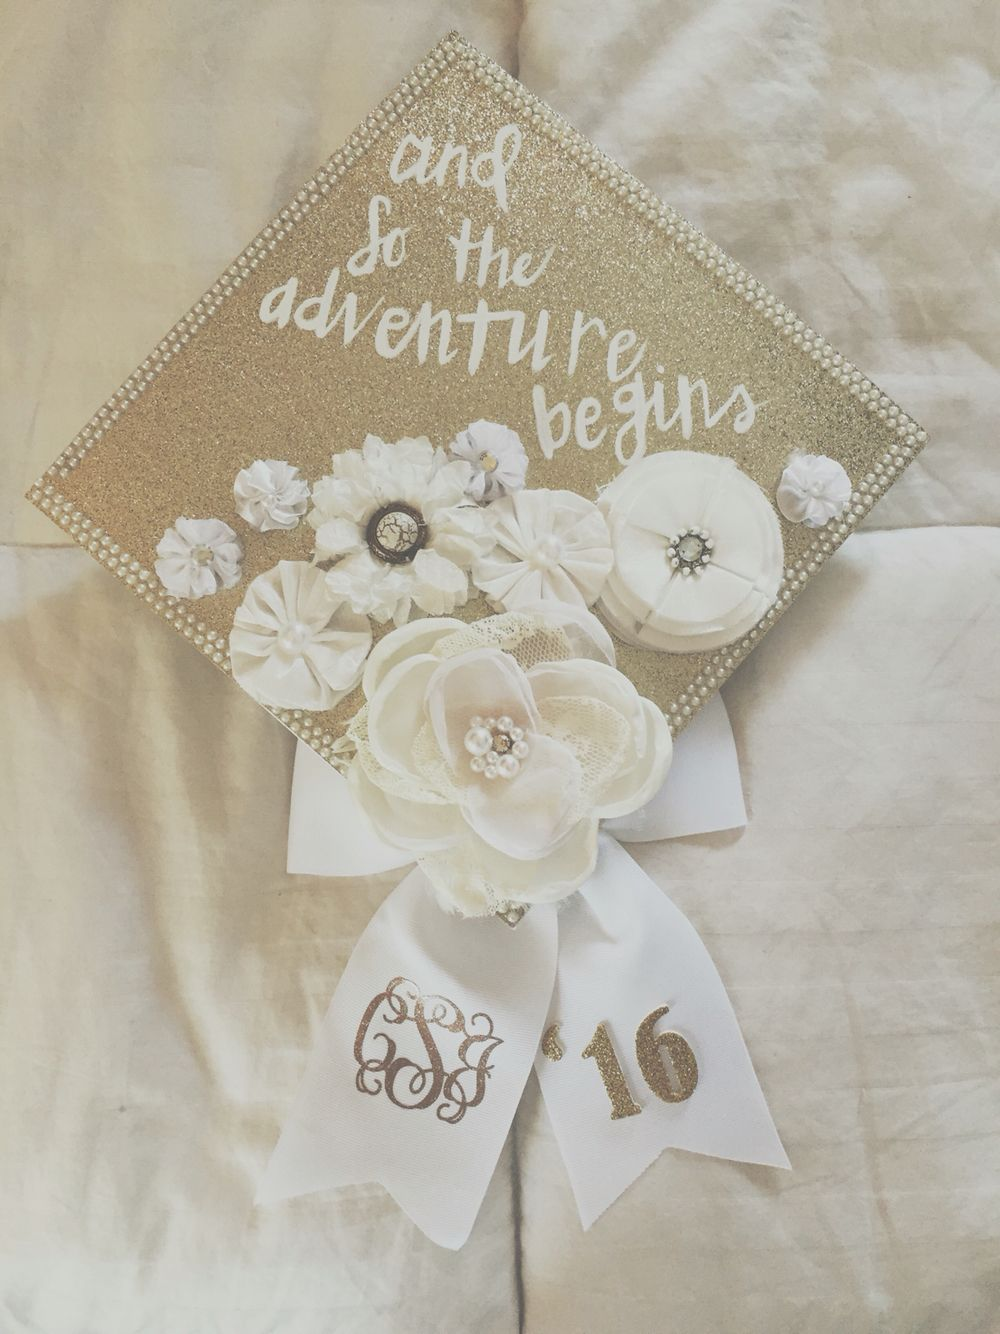 My Graduation Cap Decorated With White Faux Flowers Pearls And